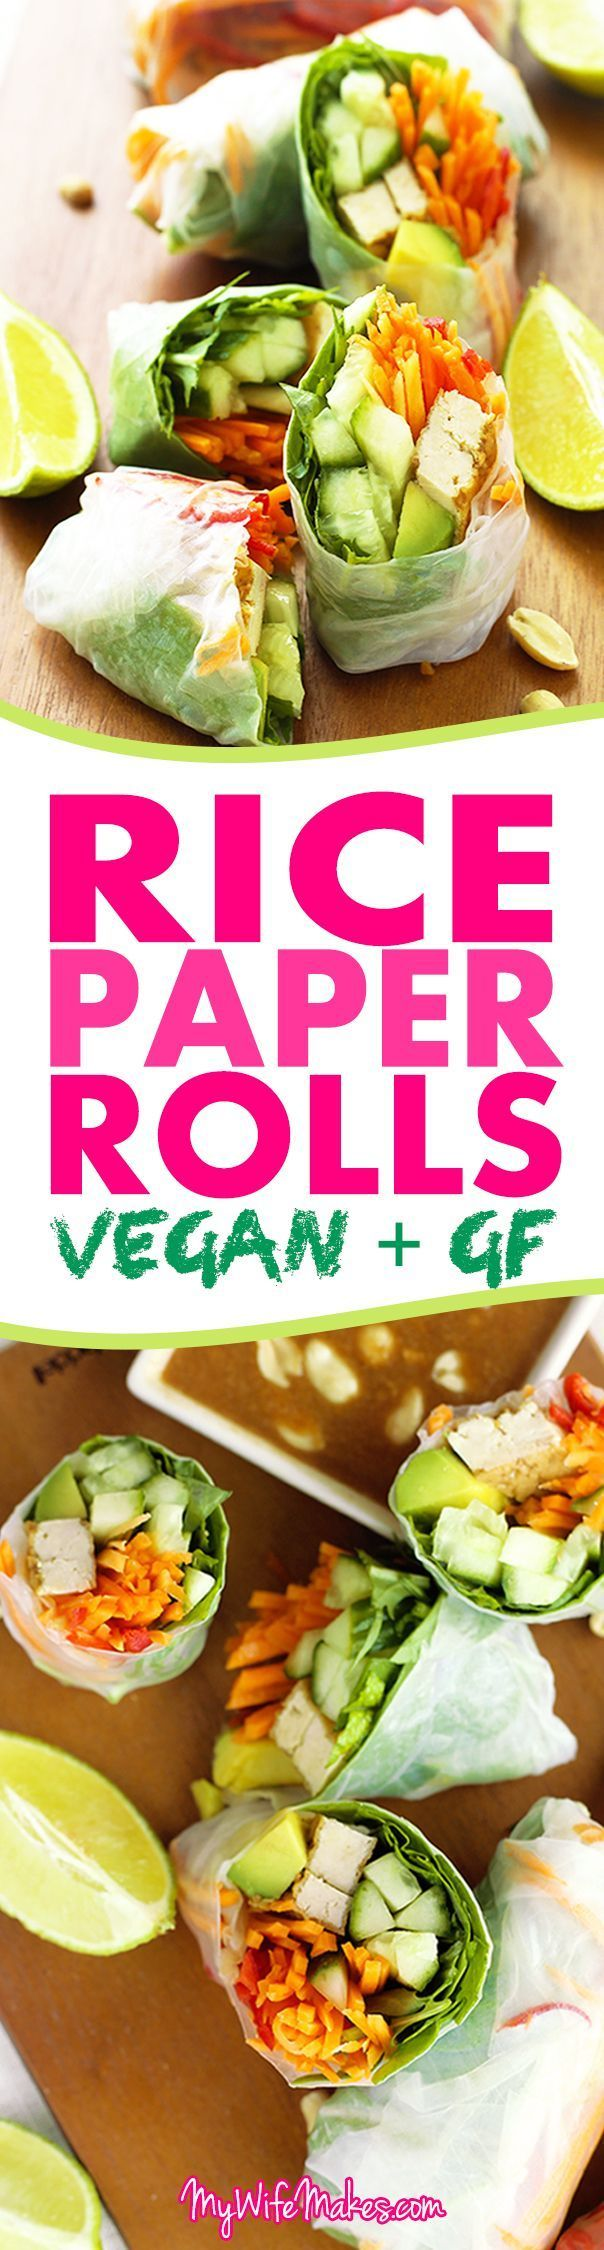 Easy lunch recipe for Vegan Rice Paper Rolls with Hoisin Peanut Dipping Sauce. Filled with avocado, carrots, cucumbers, chillies, and other healthy ingredients.